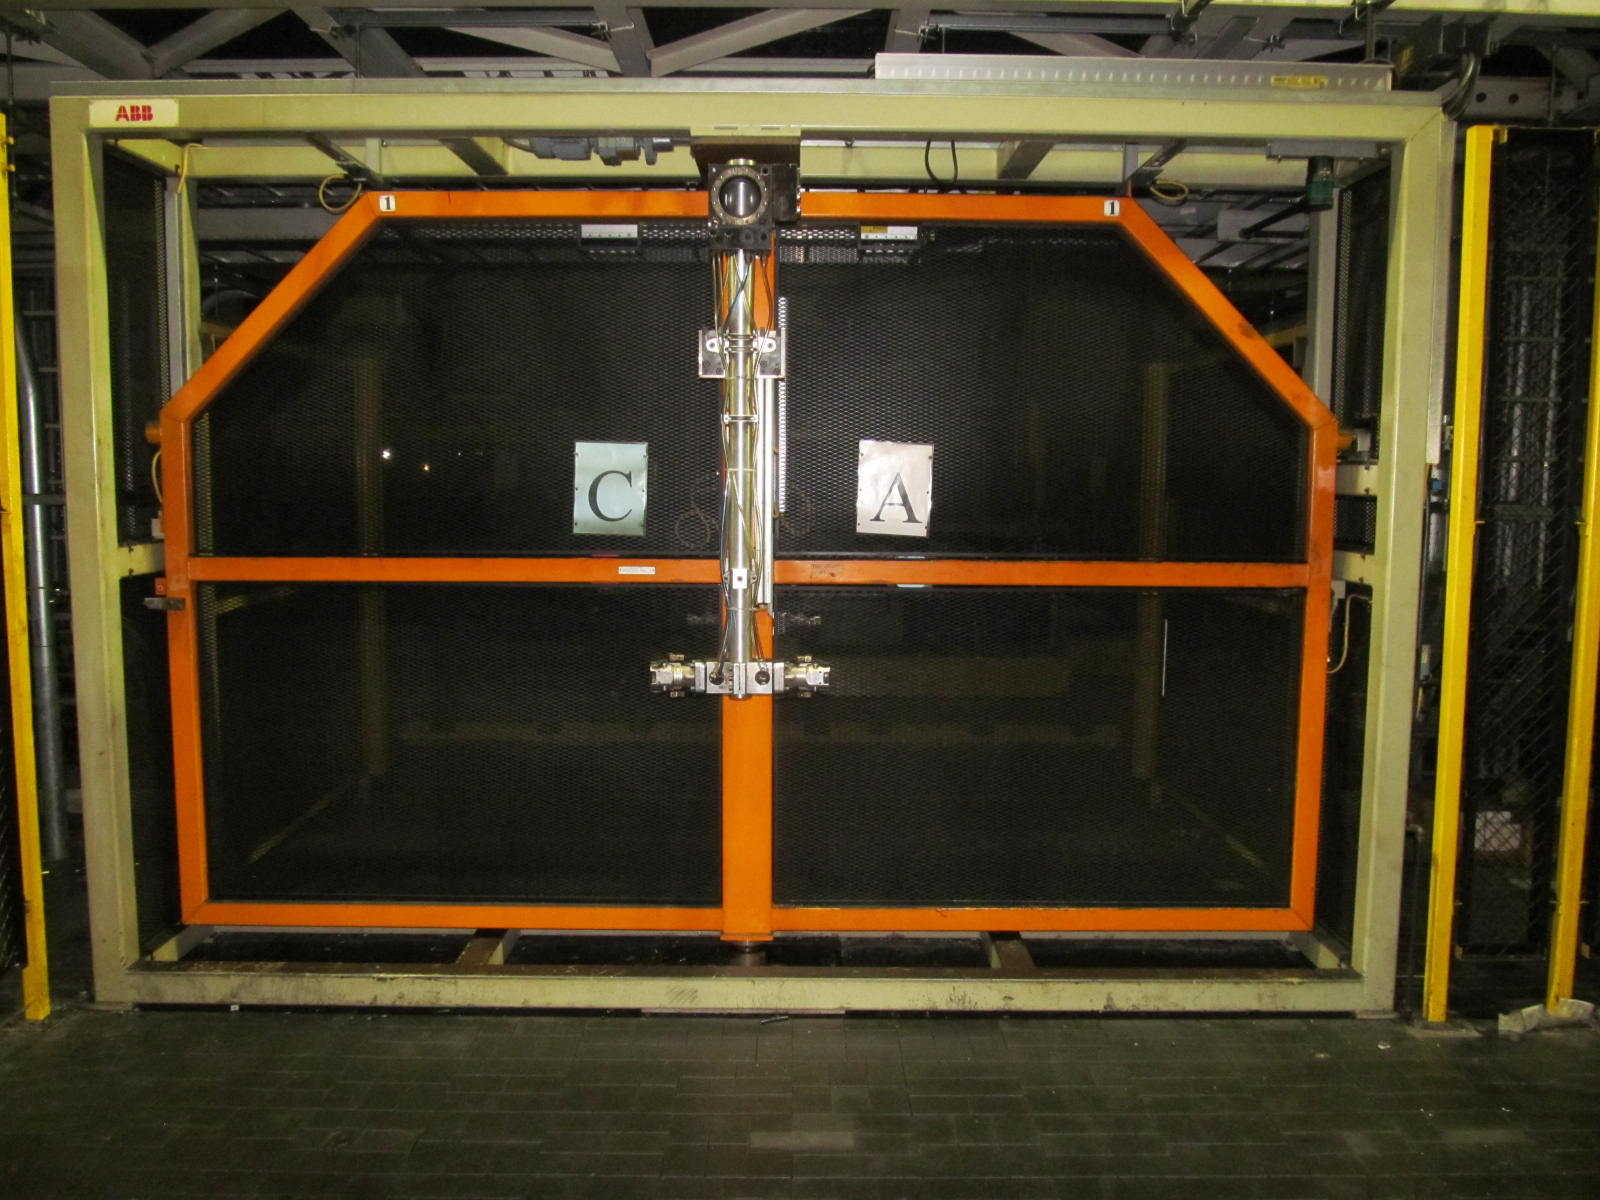 6-AXIS KUKA TRANSFER ROBOT w/ CONTROL & TEACH PAD, *PLEASE NOTE: SUBJECT TO SELLER CONFIRMATION* - Image 2 of 3